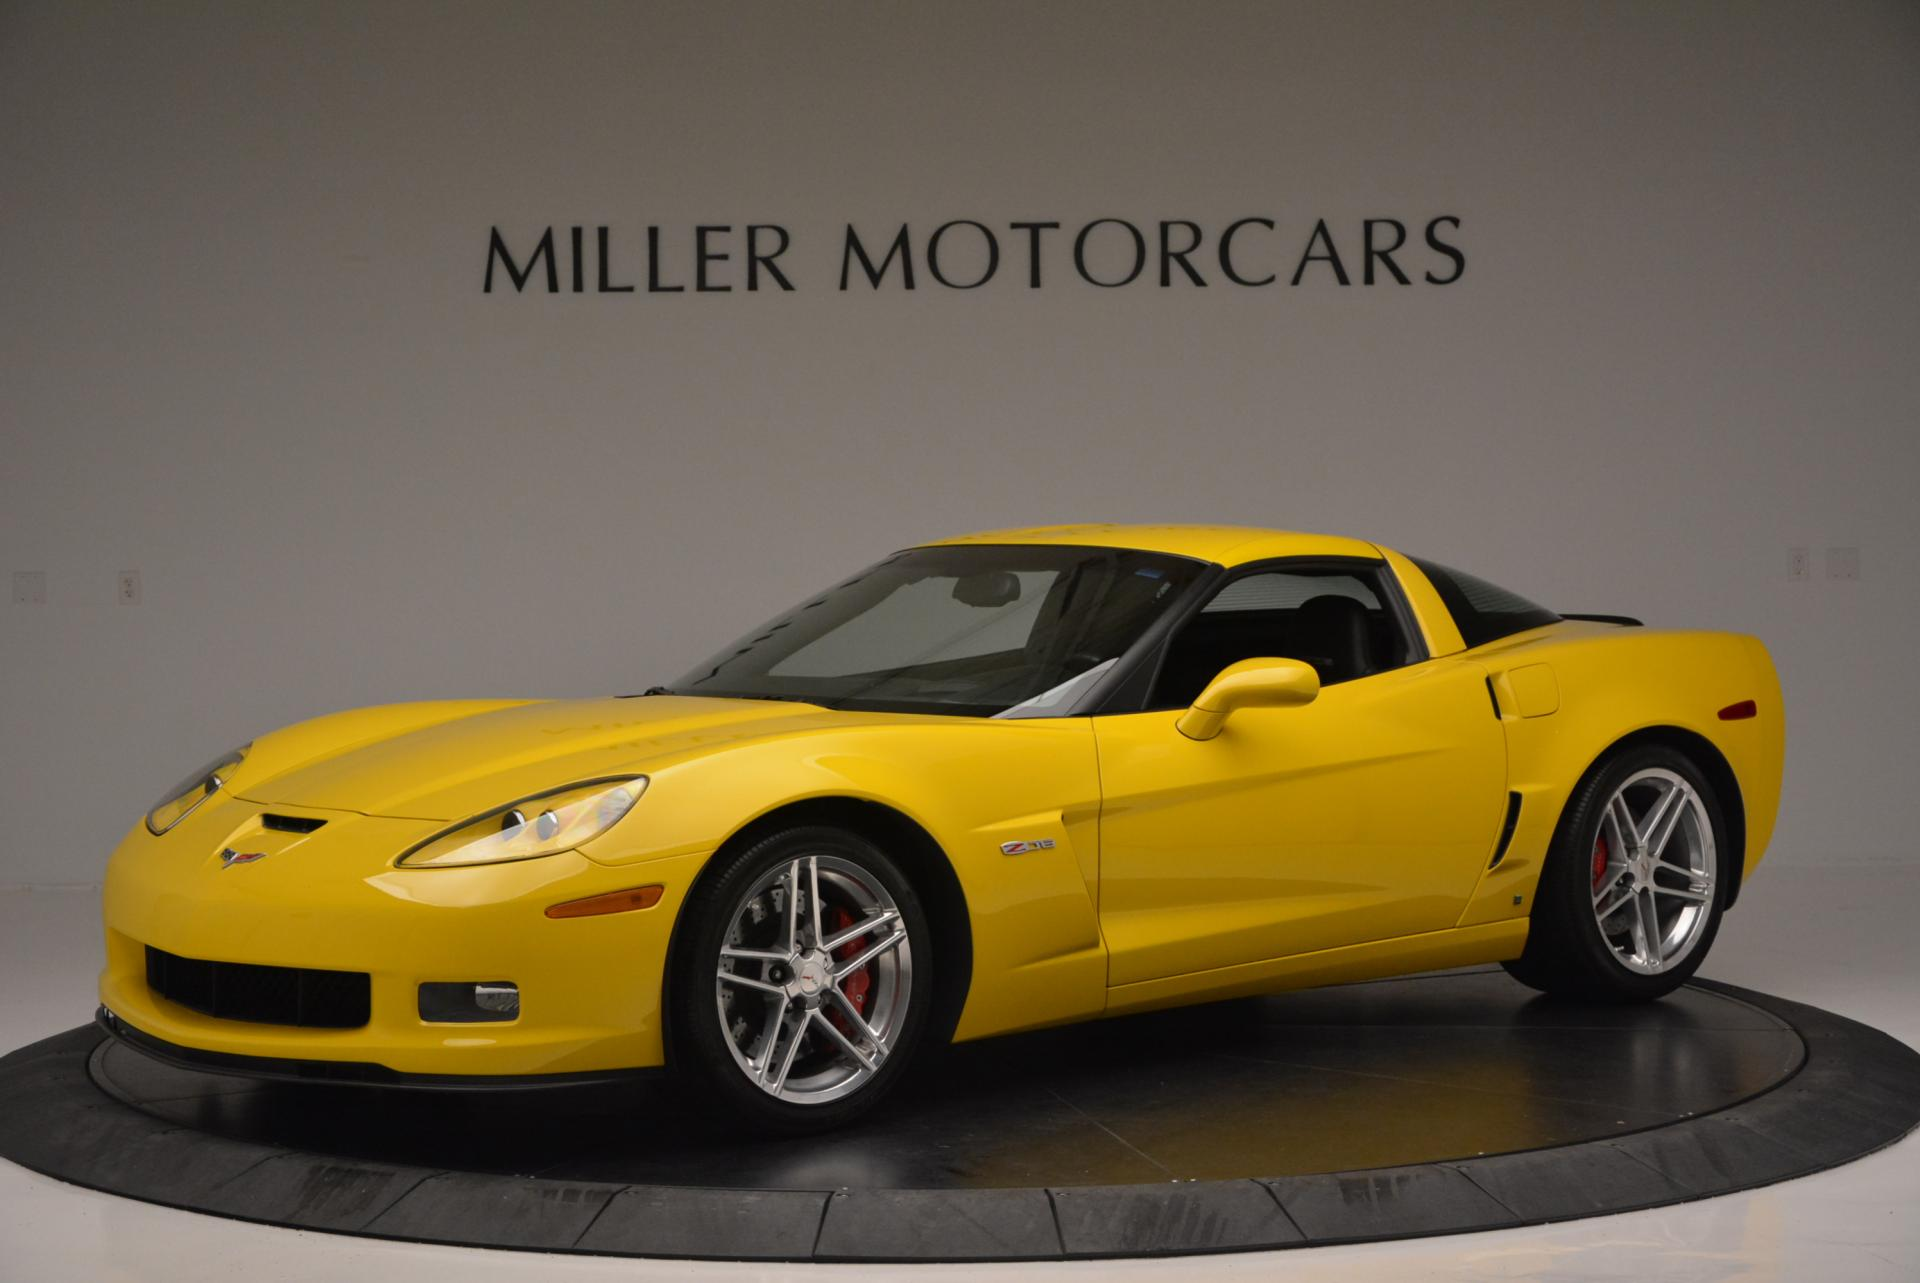 Used 2006 Chevrolet Corvette Z06 Hardtop for sale Sold at Maserati of Greenwich in Greenwich CT 06830 1